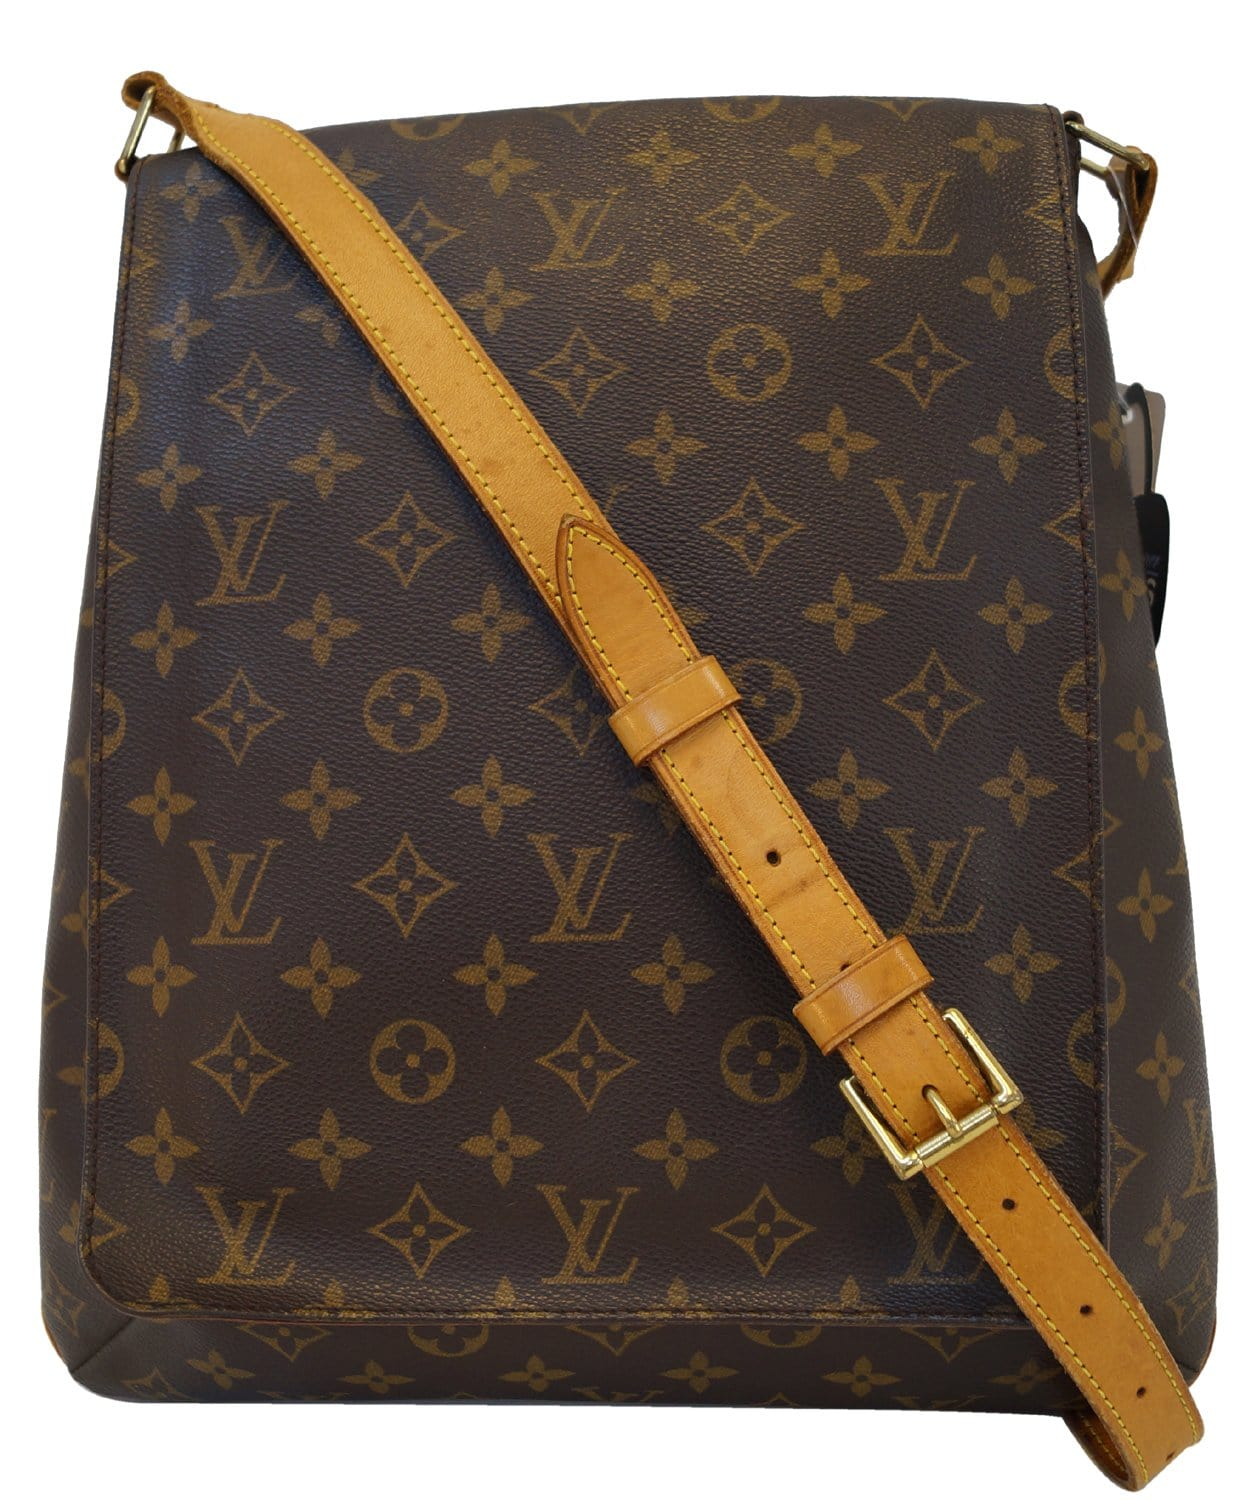 580bd0ff3dd5 LOUIS VUITTON Monogram Canvas Musette Large Crossbody Bag